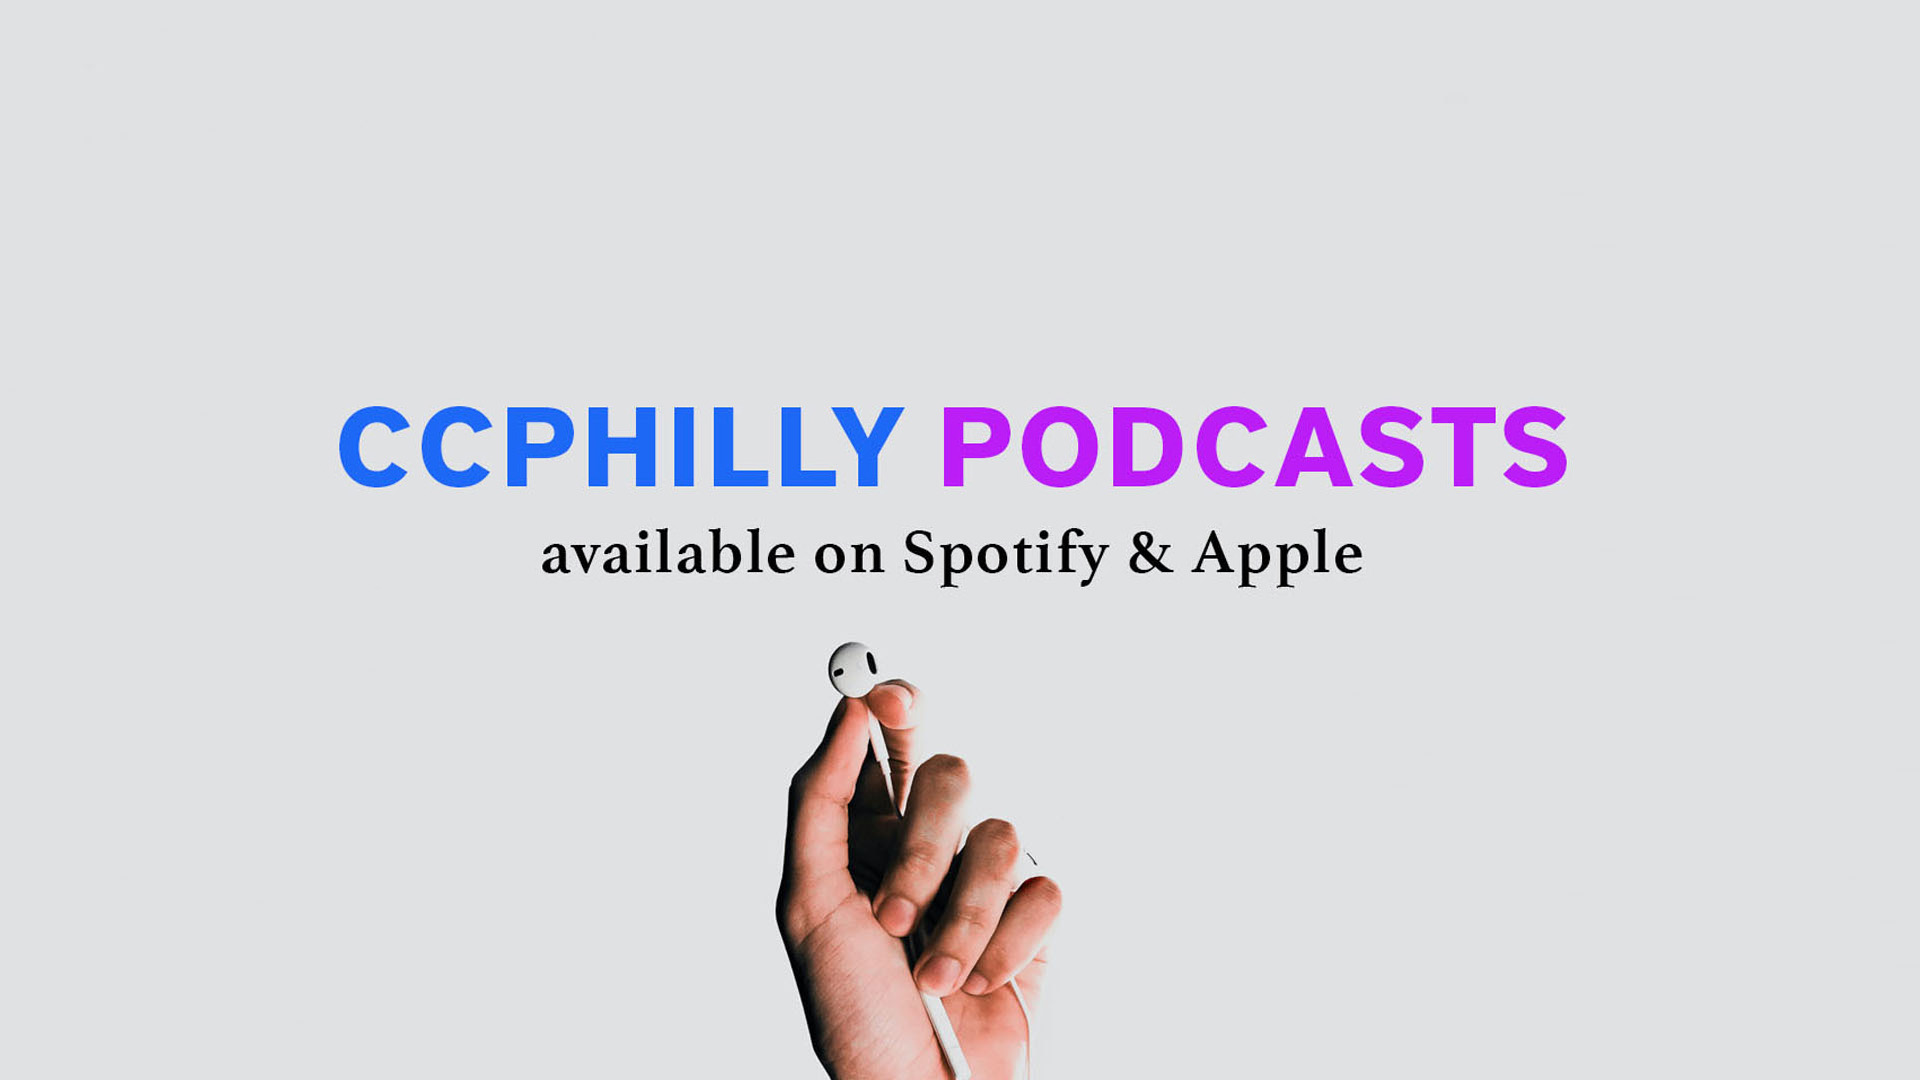 Podcast of Services